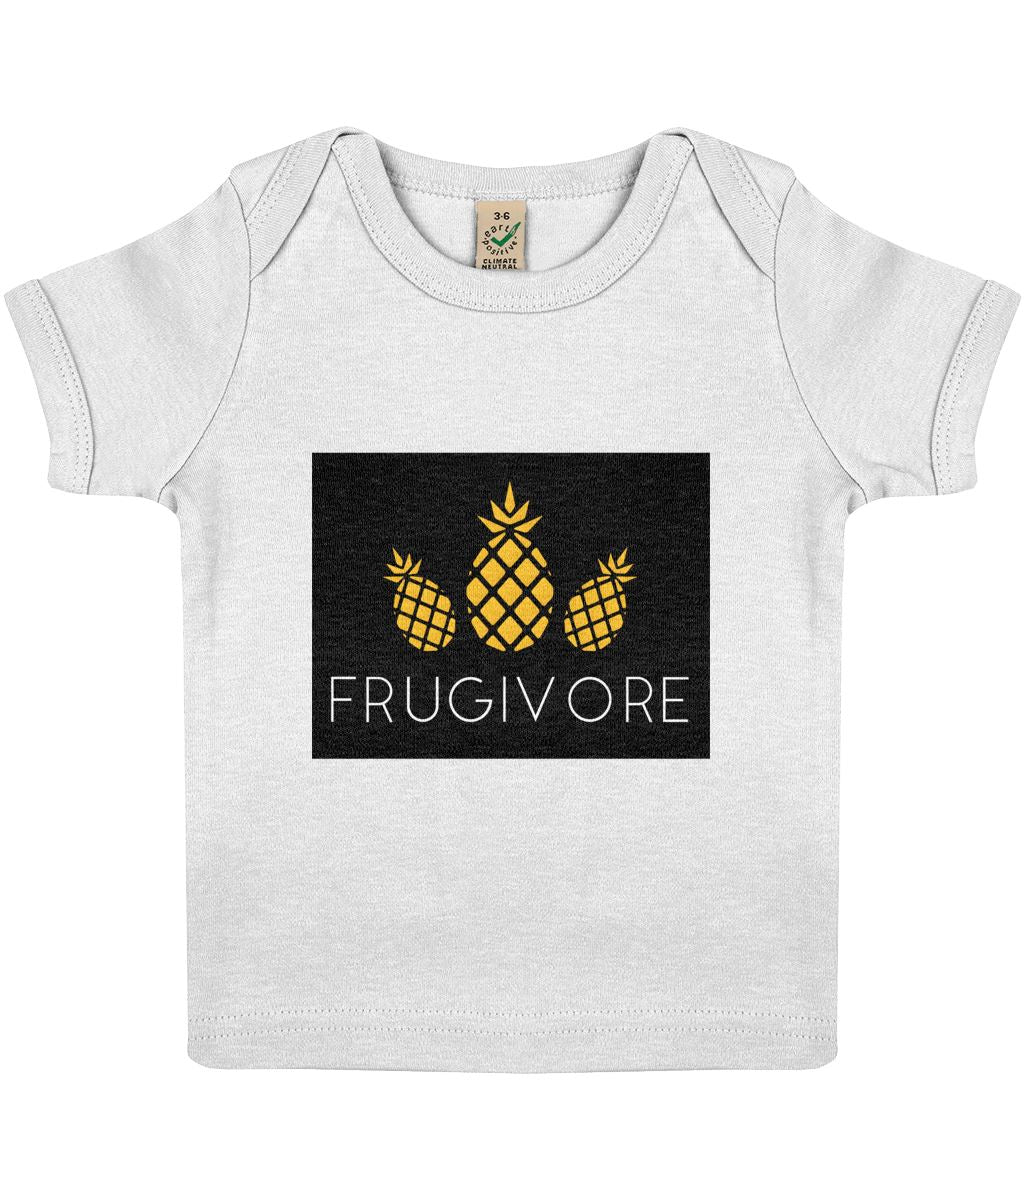 """Frugivore"" Baby Lap Vegan T-Shirt Clothing Vegan Original 3-6 months White"